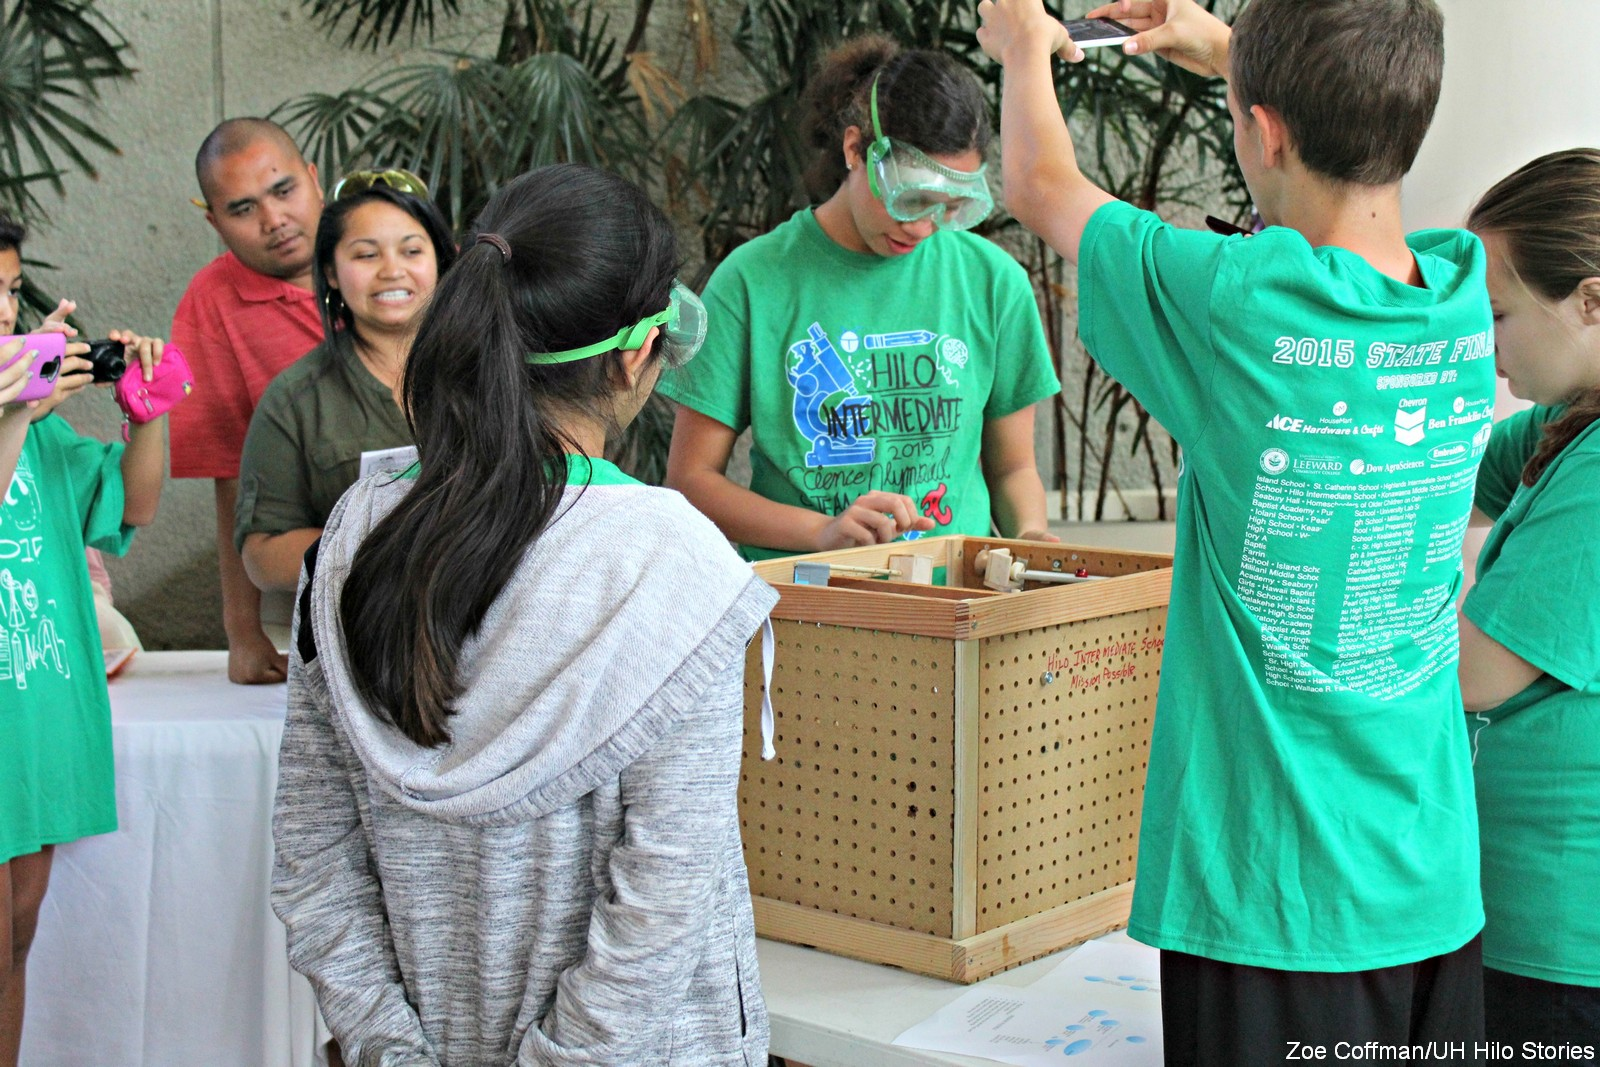 PHOTOS: Future STEM professionals, grades 6-12, compete in Science Olympiad held at UH Hilo